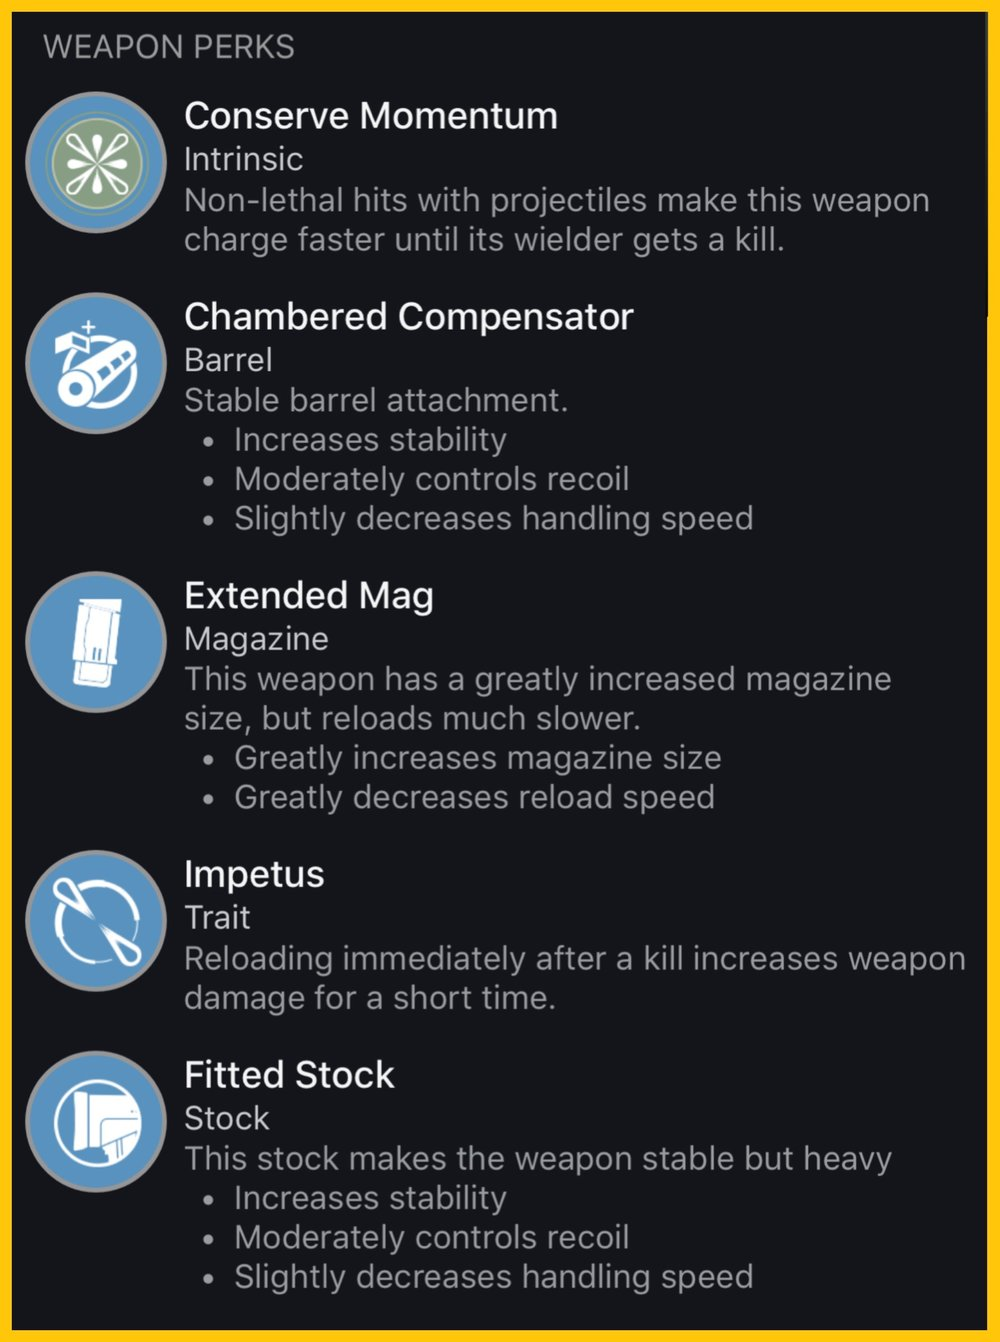 Weapons Perks.JPEG